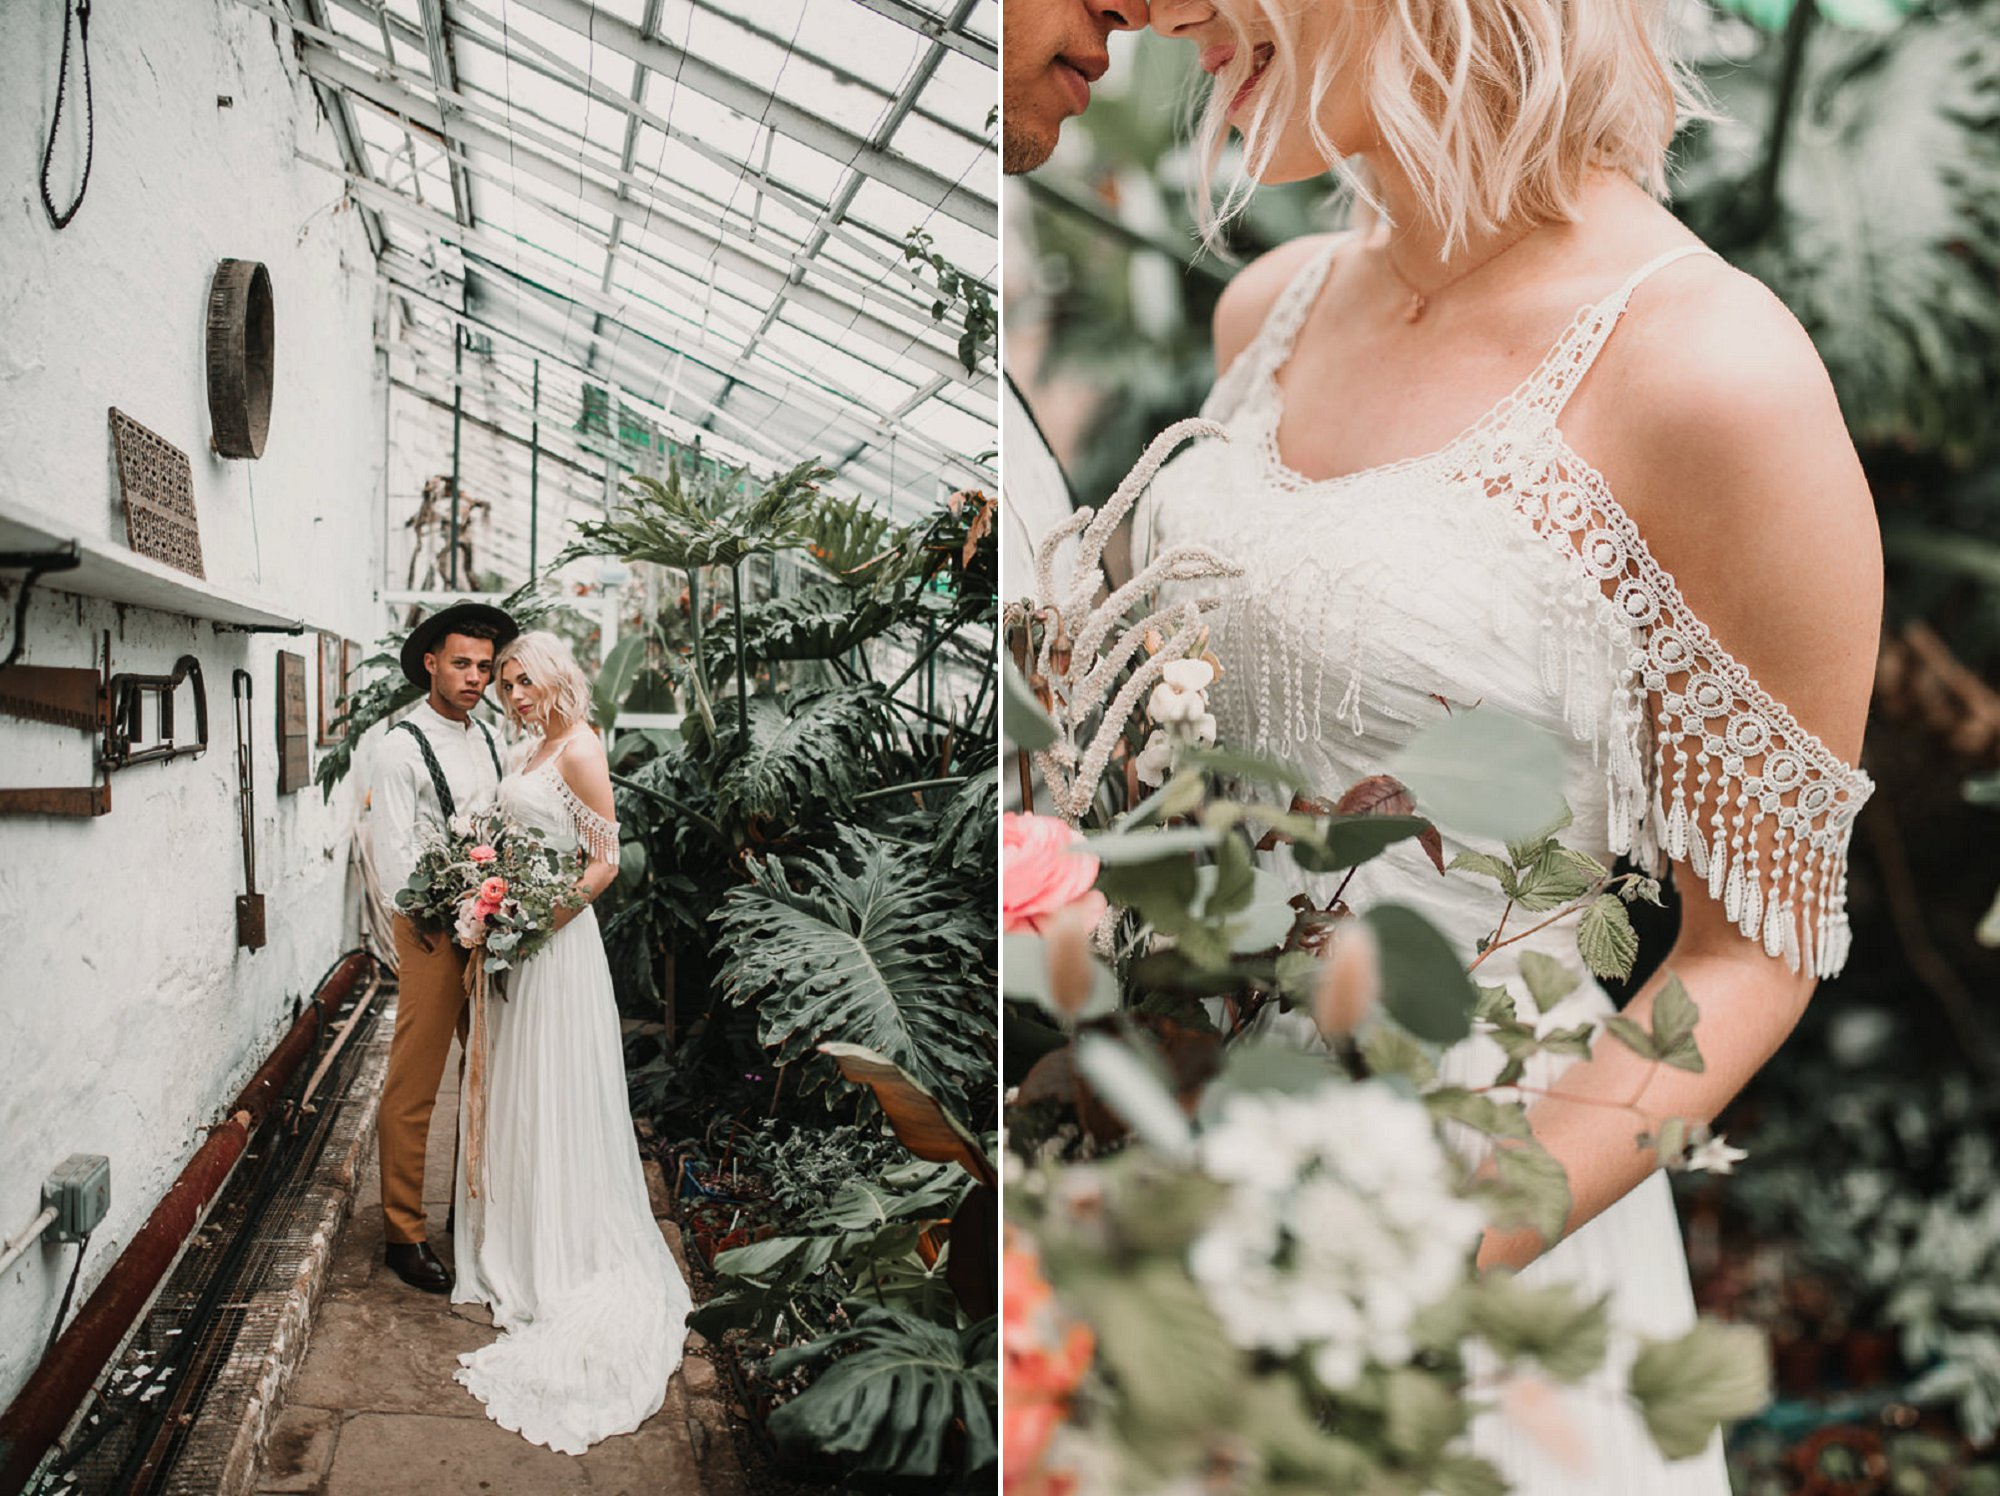 Rad wedding dresses for badass brides. (Shikoba Bride) Blush and green Bohemian Wedding Inspiration bringing a little California to you where ever you are in the world. Relaxed styling and desert inspiration and vibes. Wedding ideas for boho brides who an effortlessly relaxed, bohemian wedding. Shot by Natalie Pluck Photography. See full blog post for credits and more inspiration here https://www.nataliepluck.com/bohemian-wedding-inspiration/ 